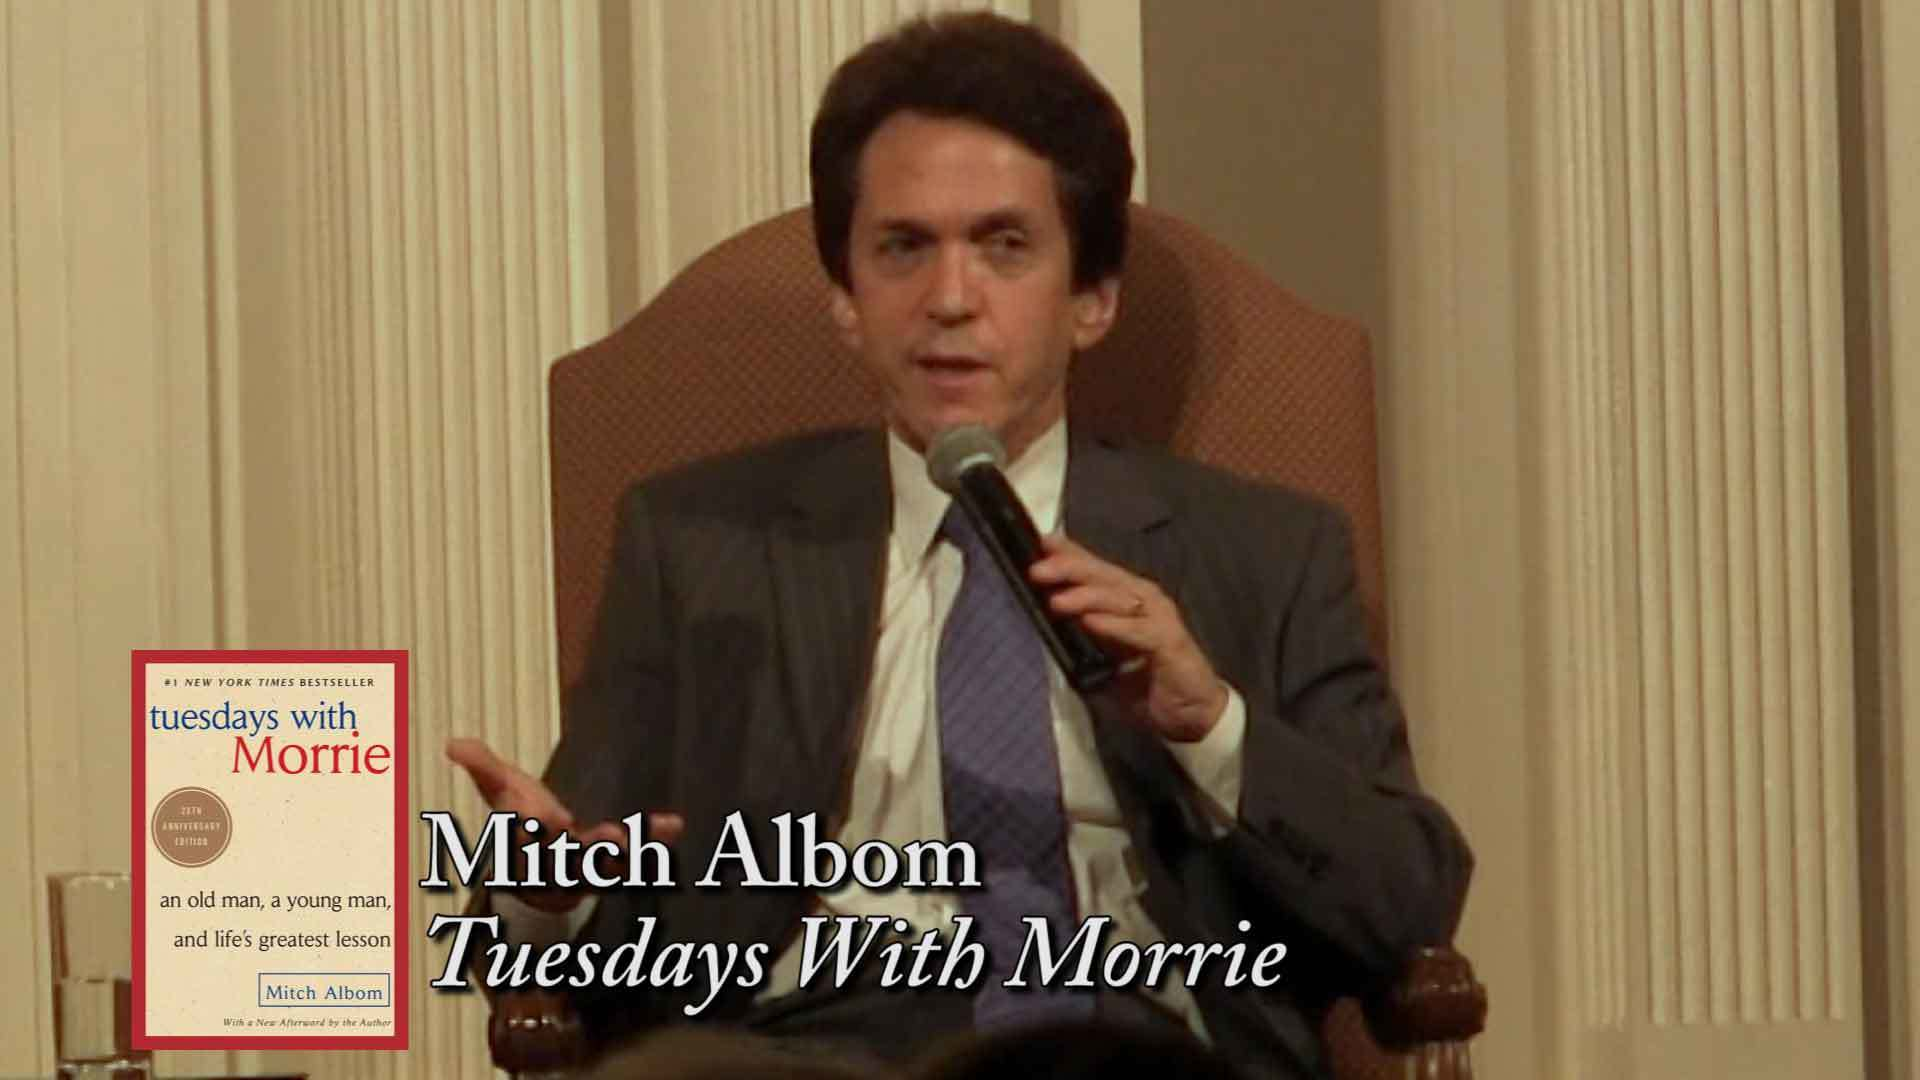 mitch albom Author of tuesdays with morrie, philanthropist, columnist, and sports reporter mitch albom is an inspiration around the world his books have sold over 35 million copies and have been translated into over 40 languages.